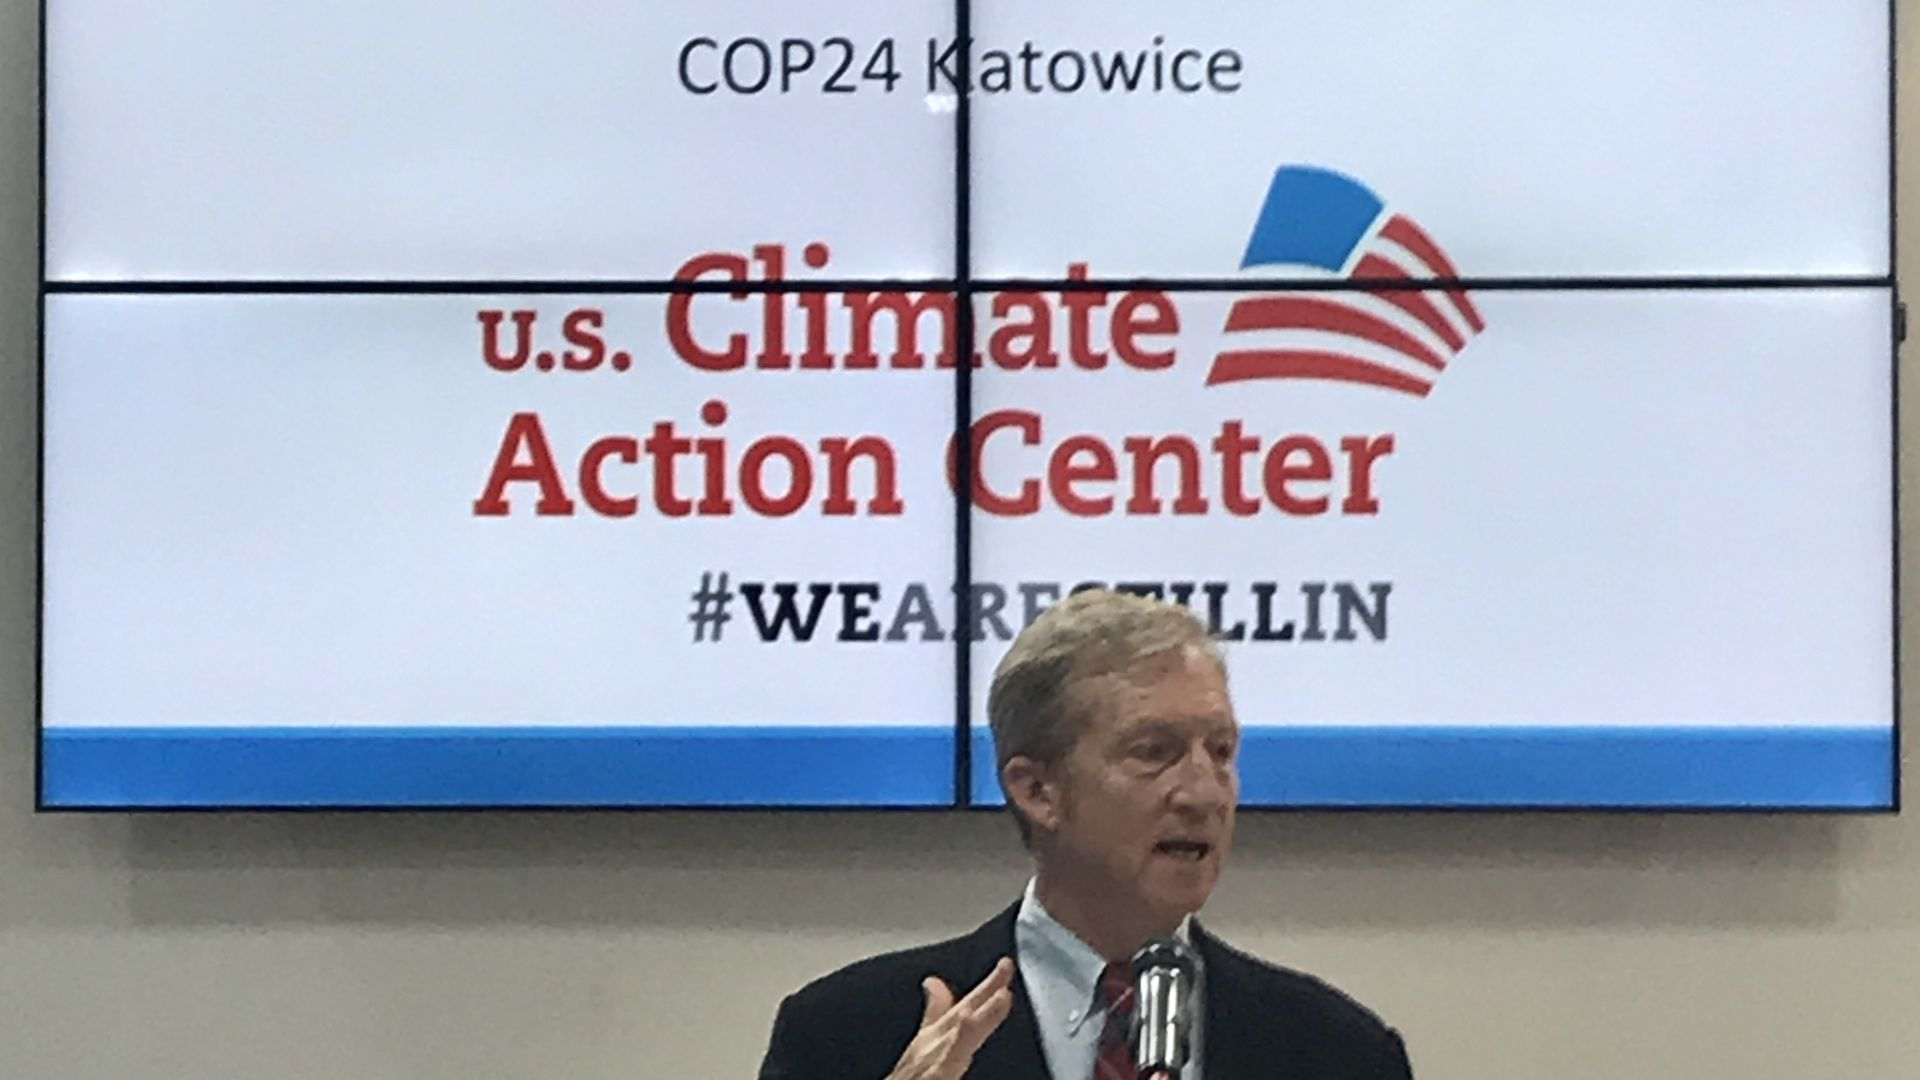 Liberal activist Tom Steyer at climate-change conference in Poland.